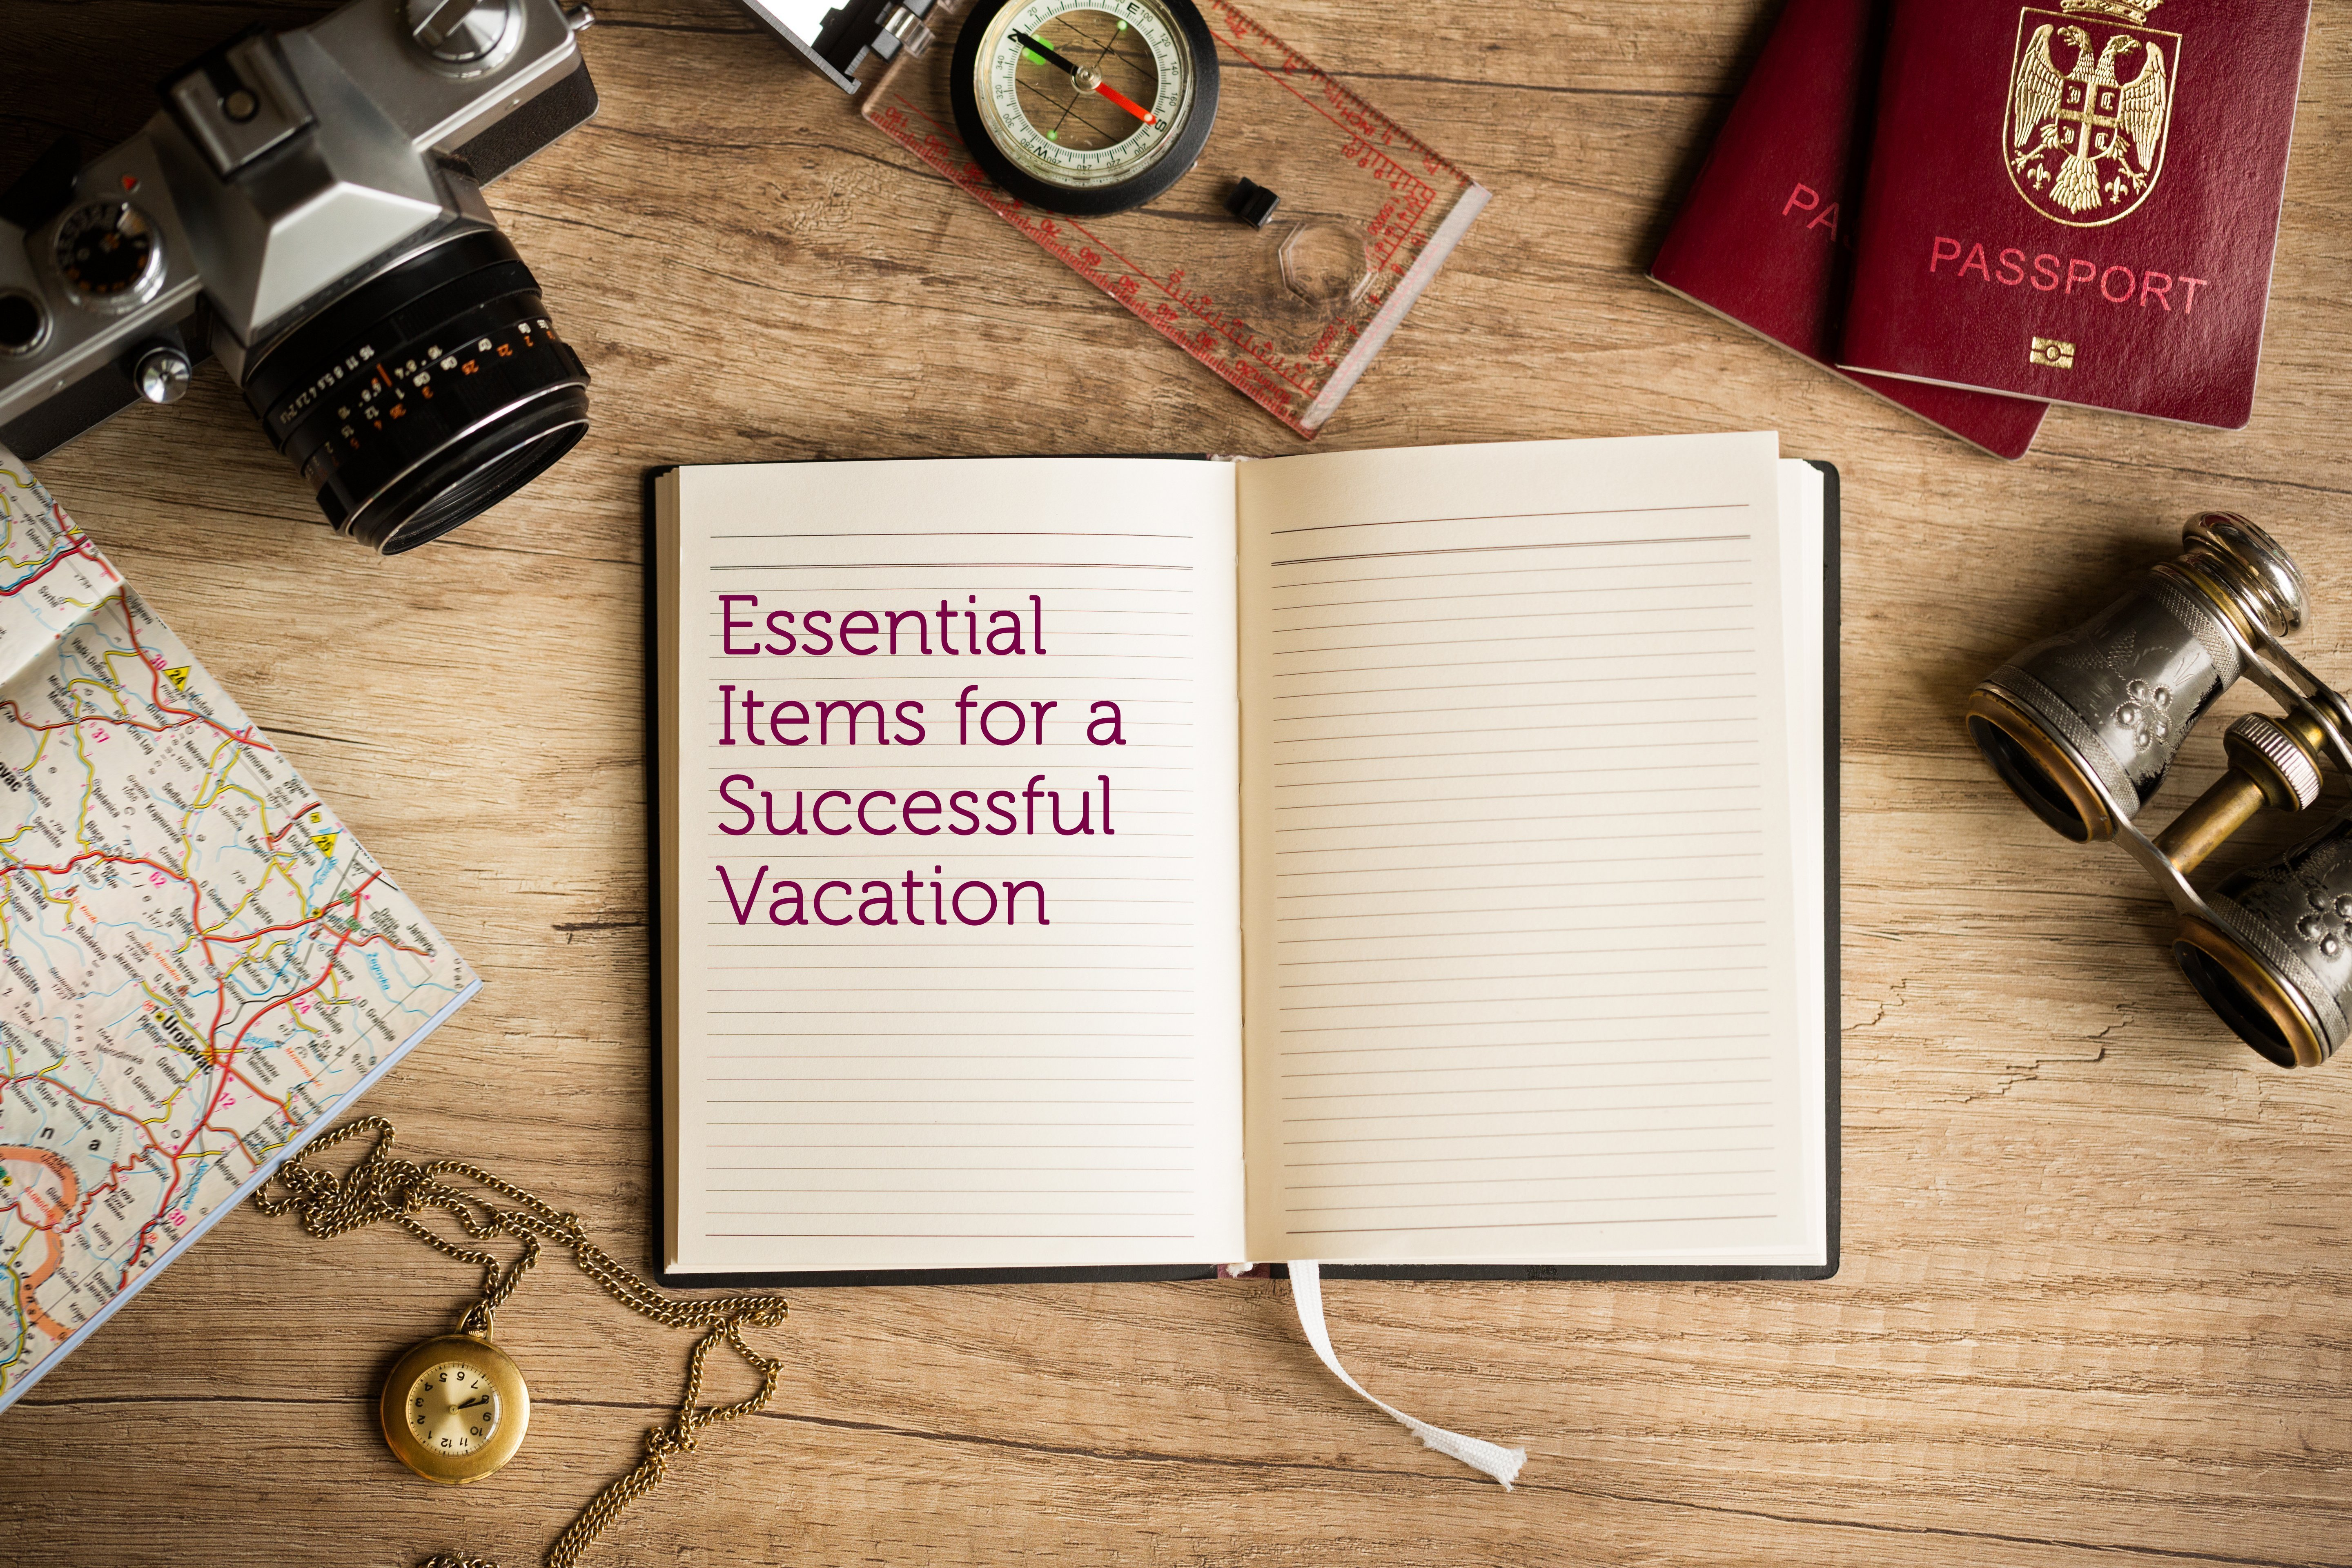 essential items for a successful vacation